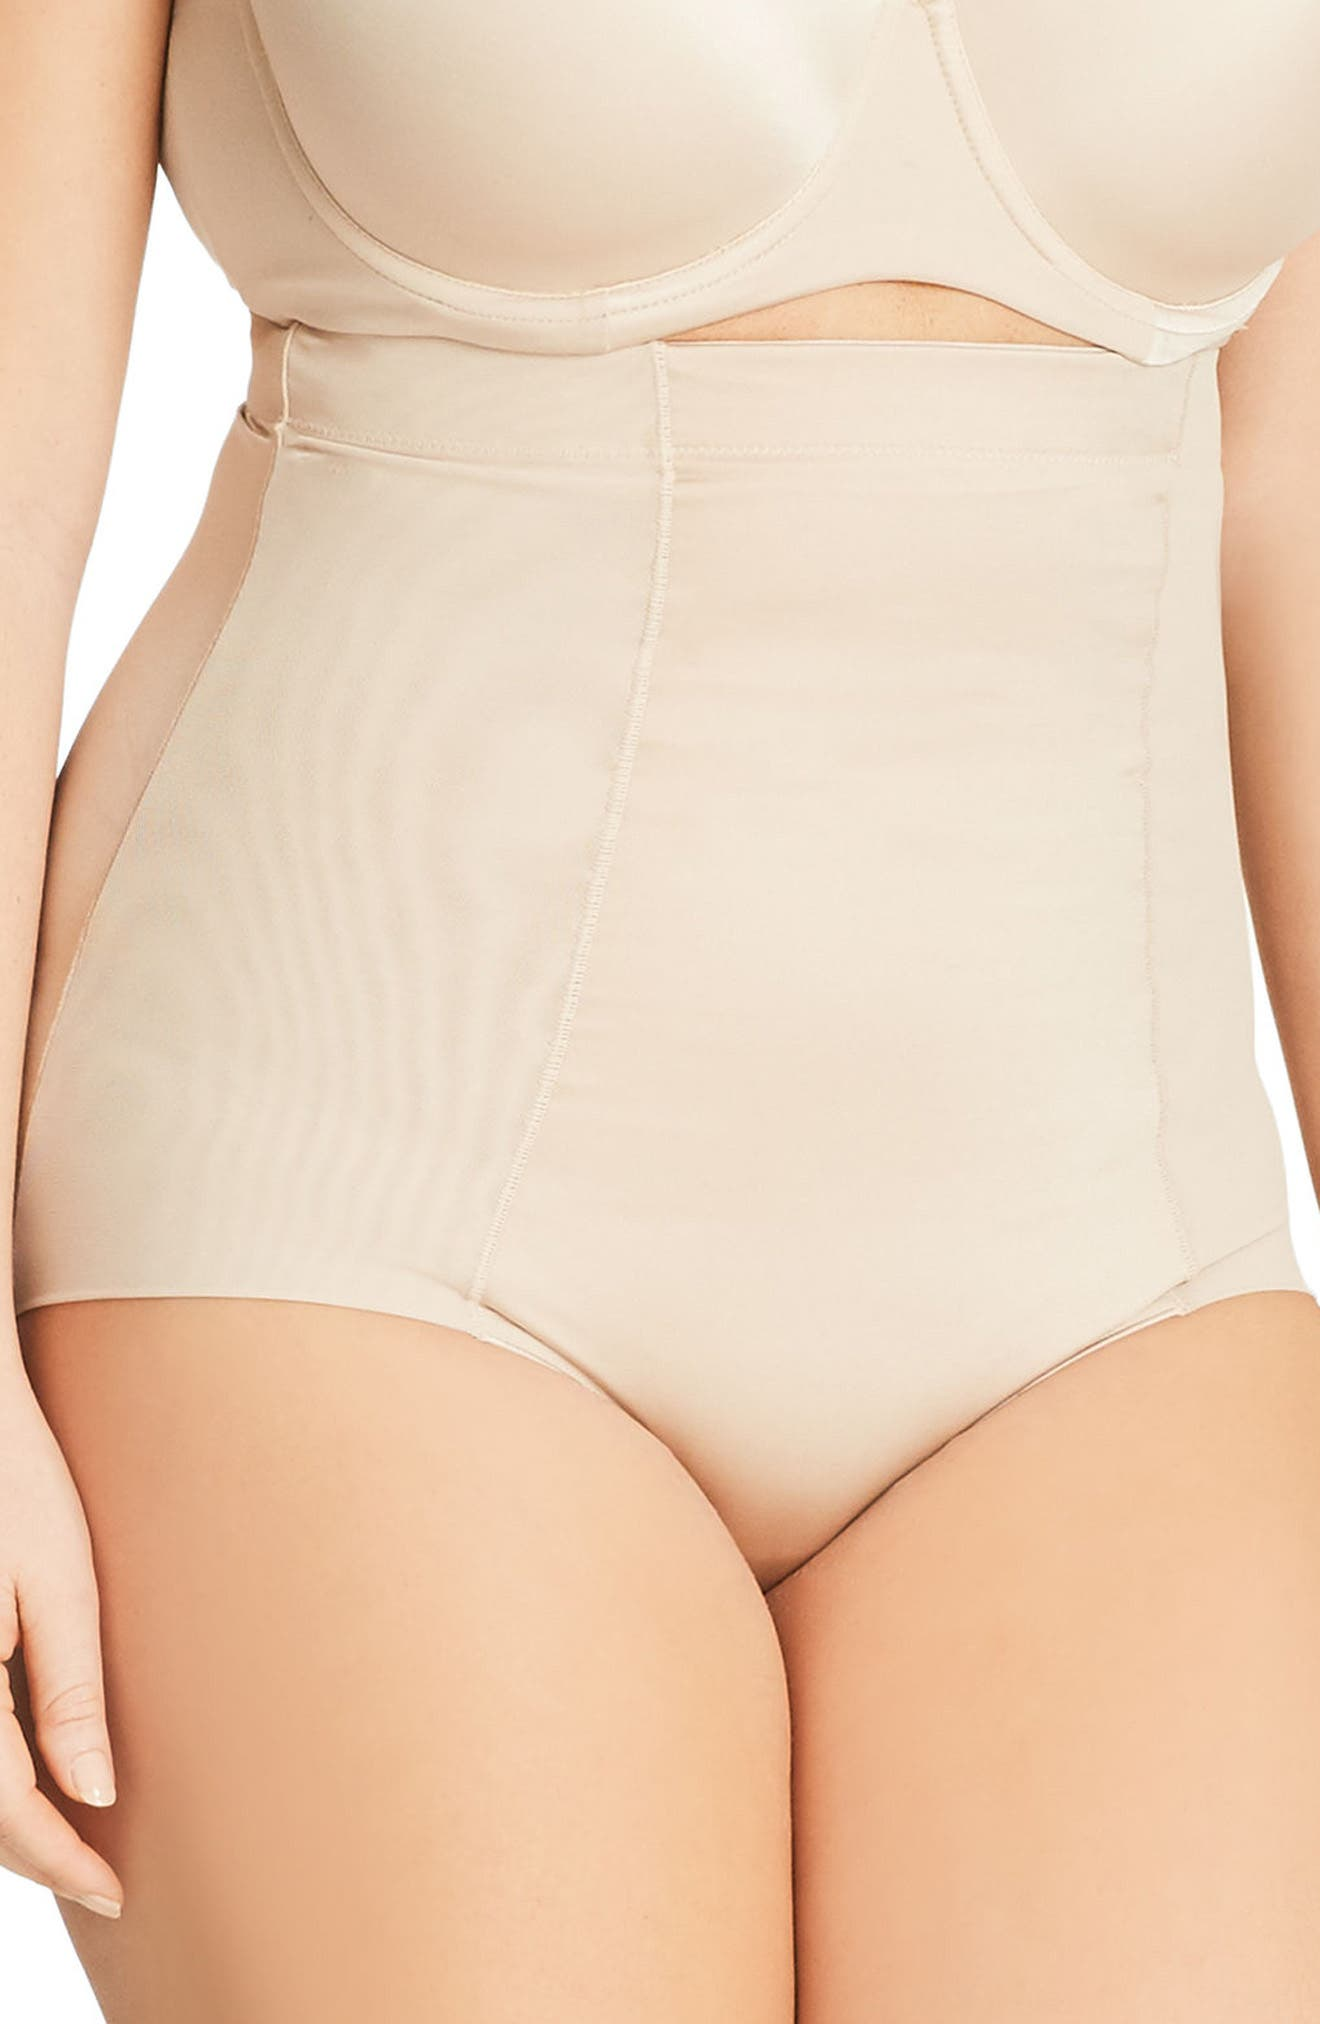 Smooth & Chic Control Briefs,                             Alternate thumbnail 3, color,                             Latte